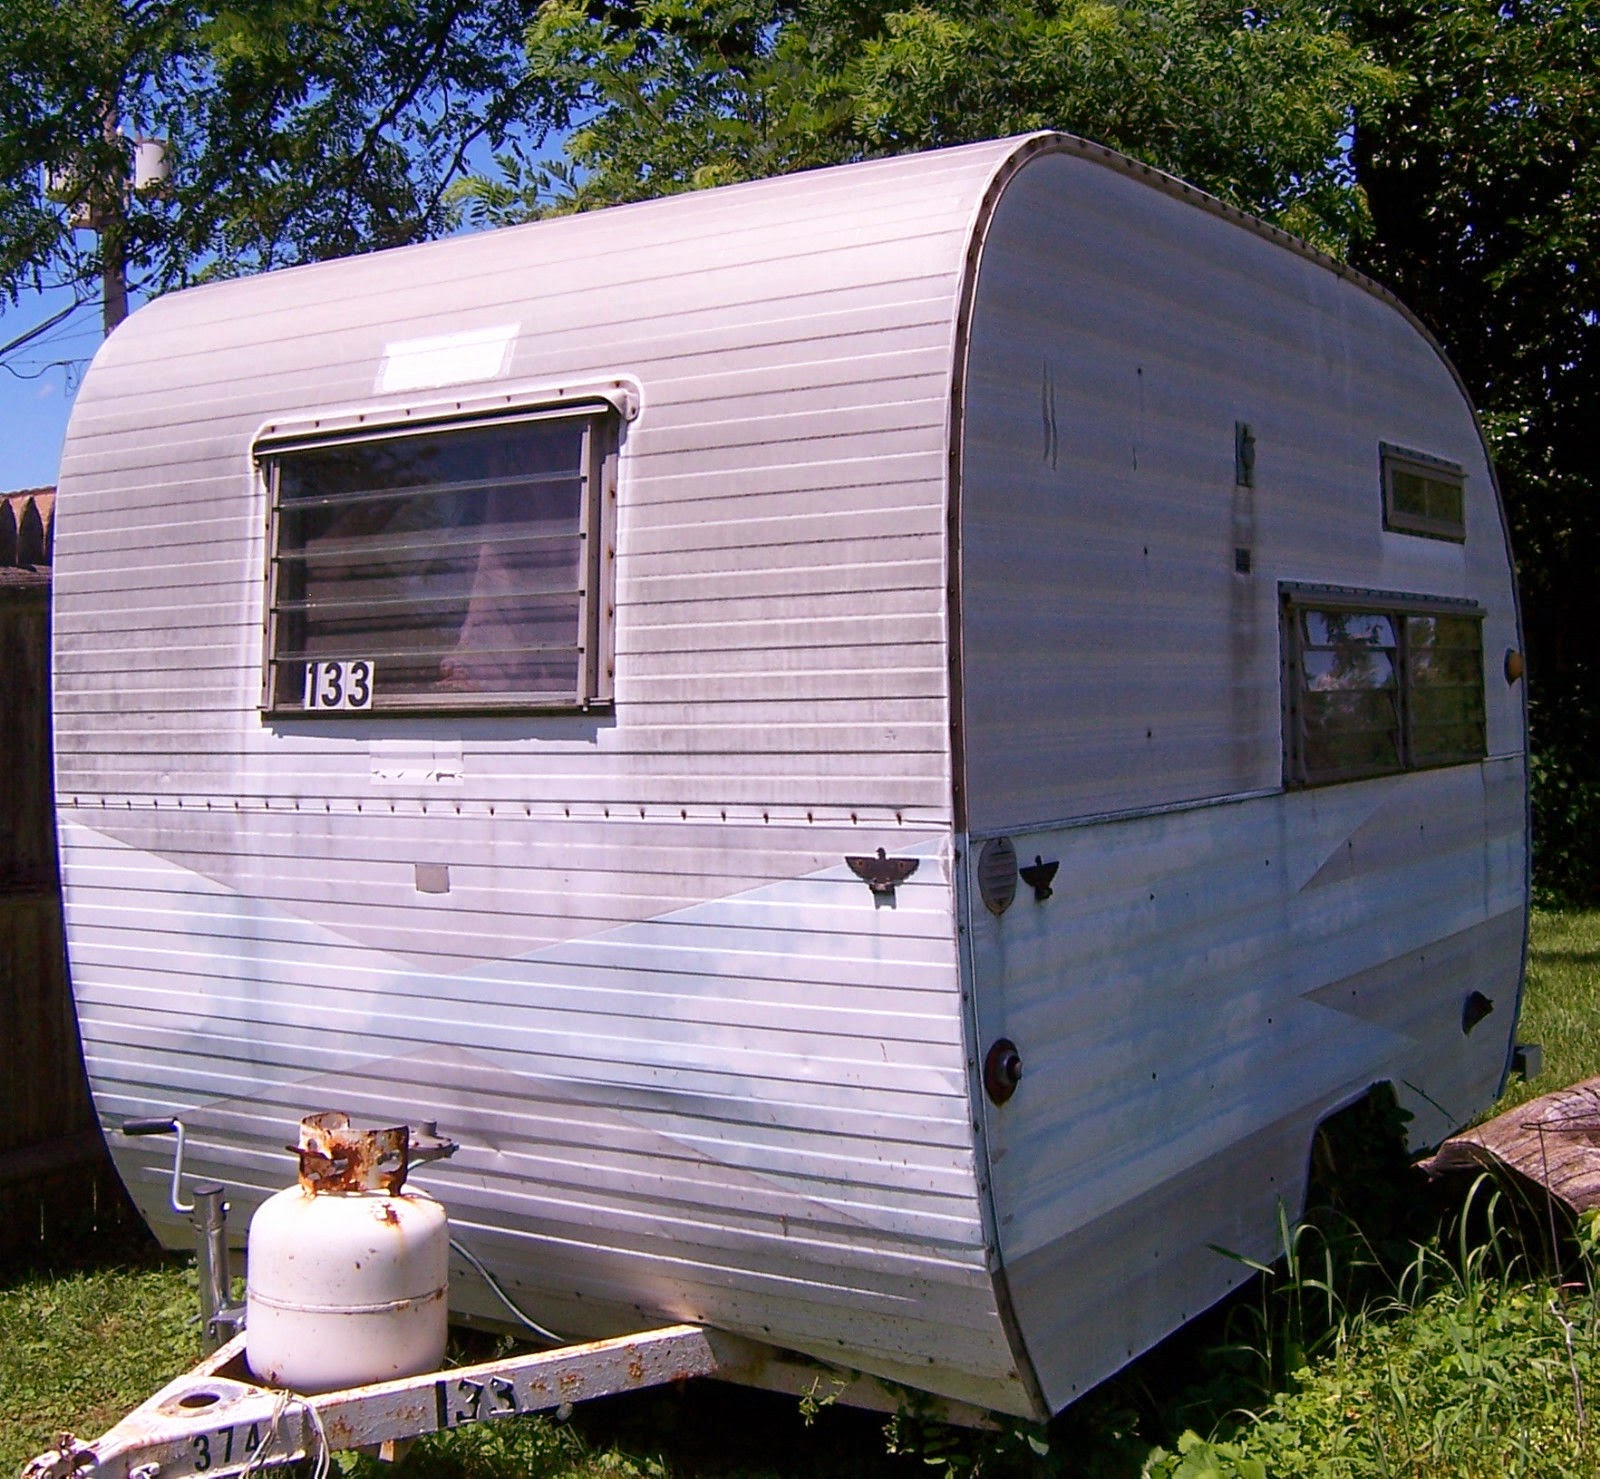 Travel Trailers With Outdoor Kitchens: Vintage Campers (Travel Trailers